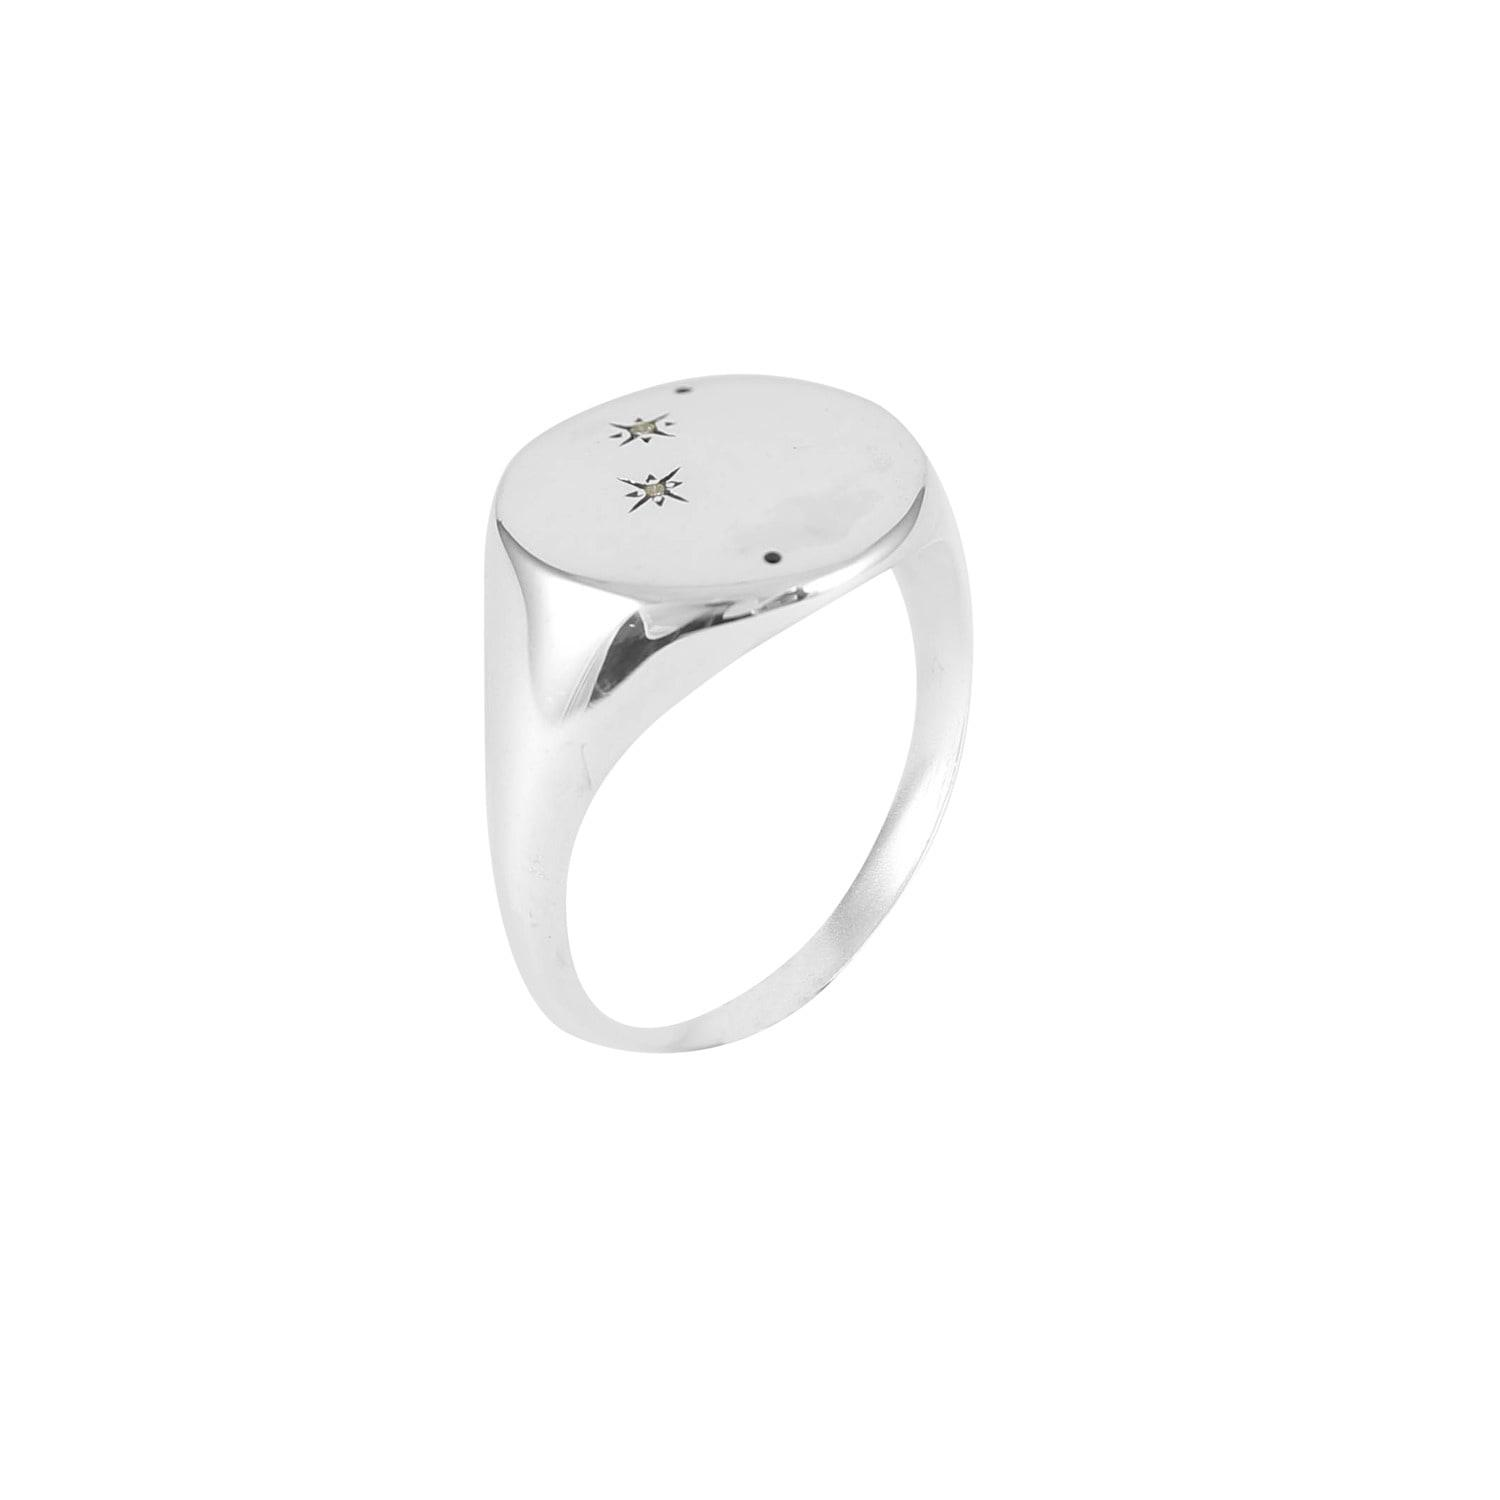 No 13 Aries Constellation Signet Ring Diamonds & Oxydised Silver in Silver / Black (Metallic)